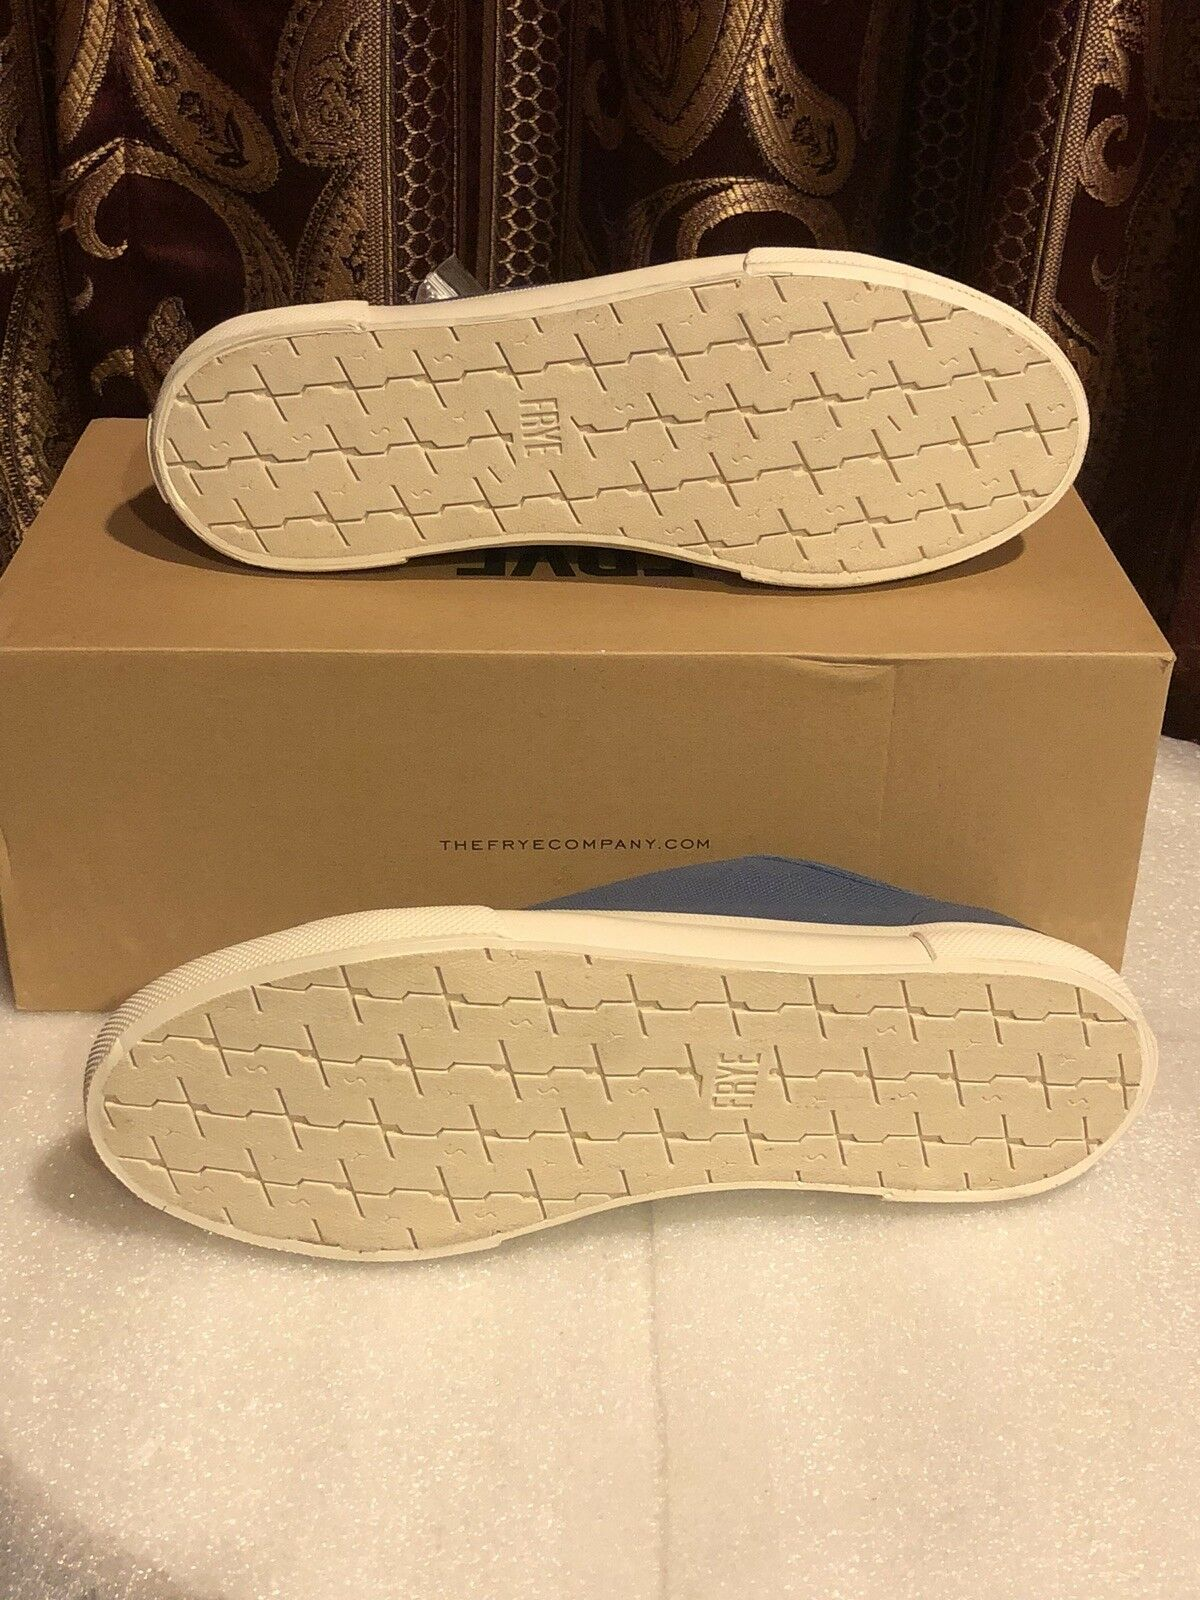 FRYE Gia Canvas Low Lace Größe 9.5 9.5 9.5 New In Box cf66e5